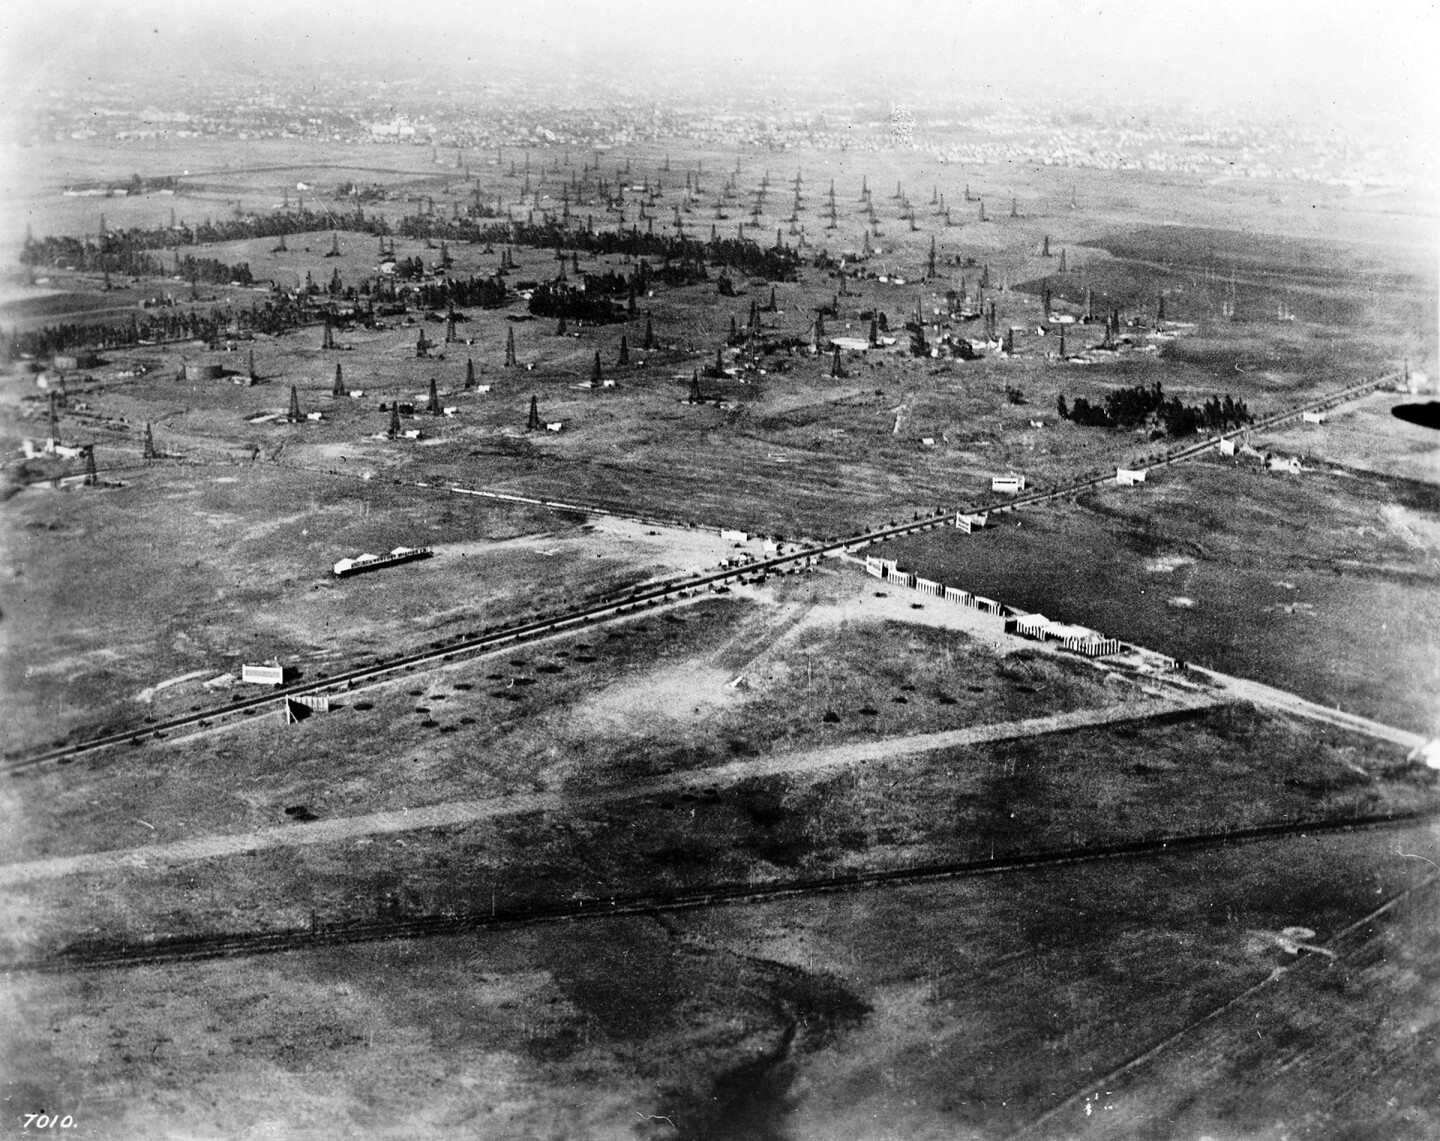 Aerial view of Wilshire Boulevard and Fairfax Avenue, showing Rogers Airport, 1920